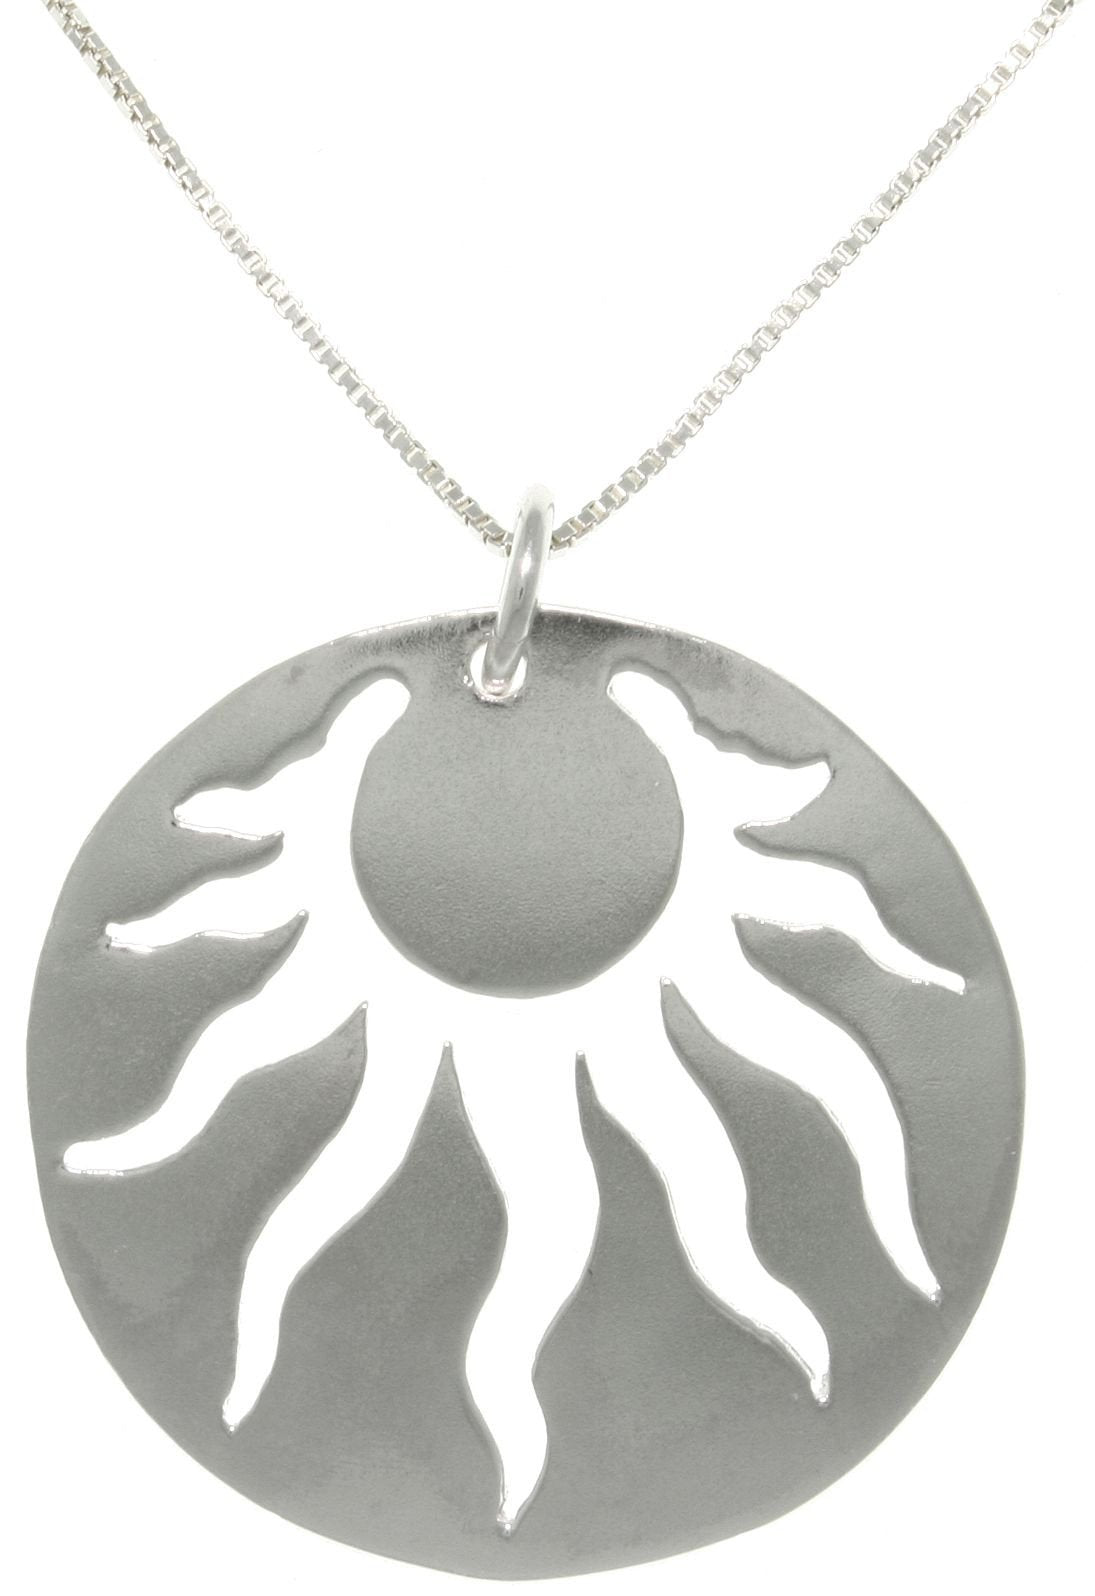 Jewelry Trends Sterling Silver Freeform Sun Pendant with 18 Inch Box Chain Necklace